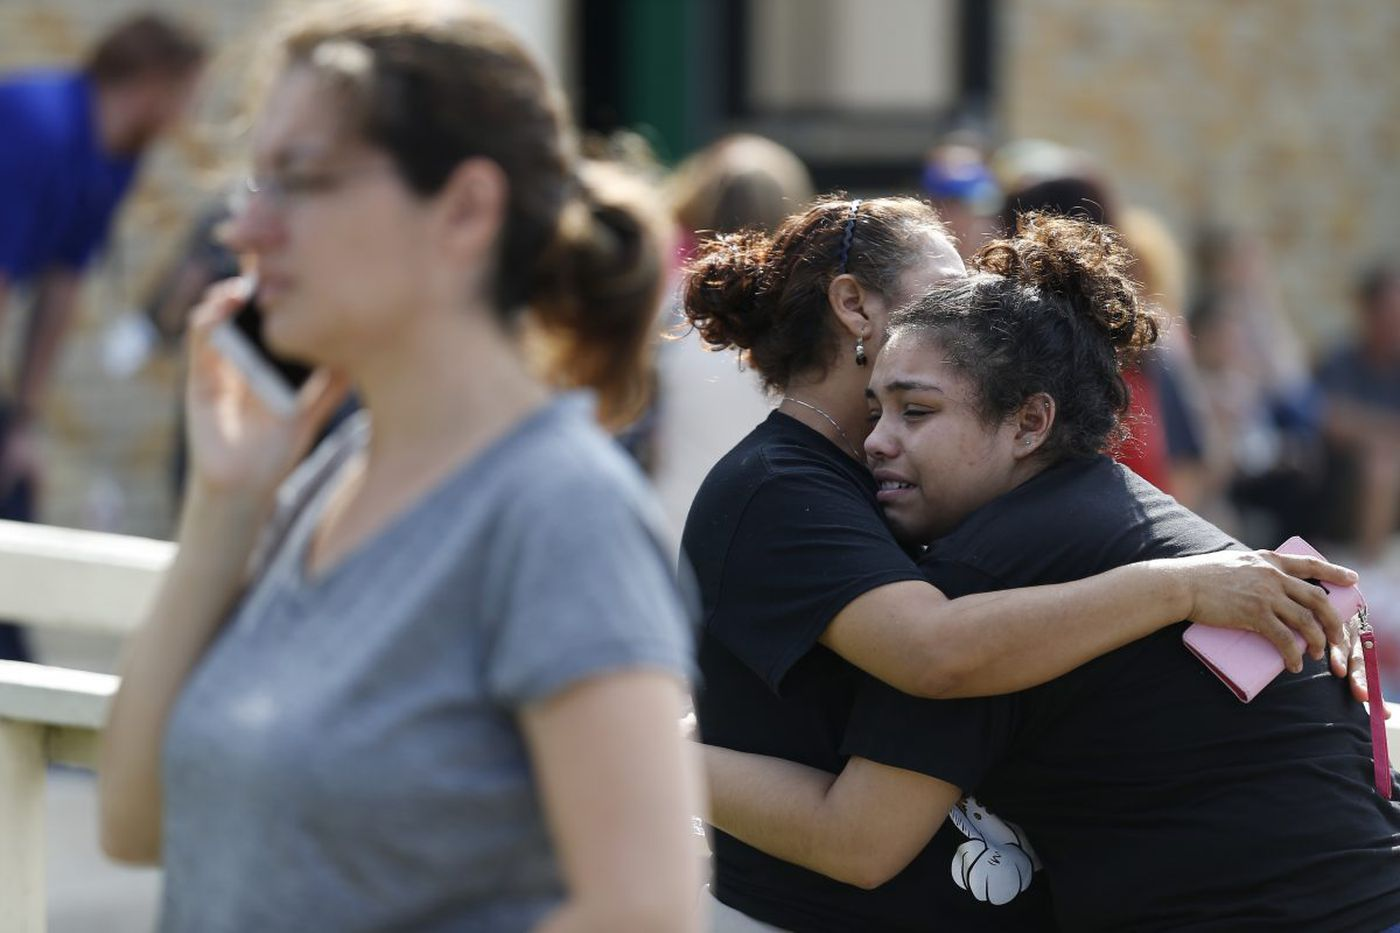 Don't hold your breath expecting gun law changes after Texas school shooting | Editorial